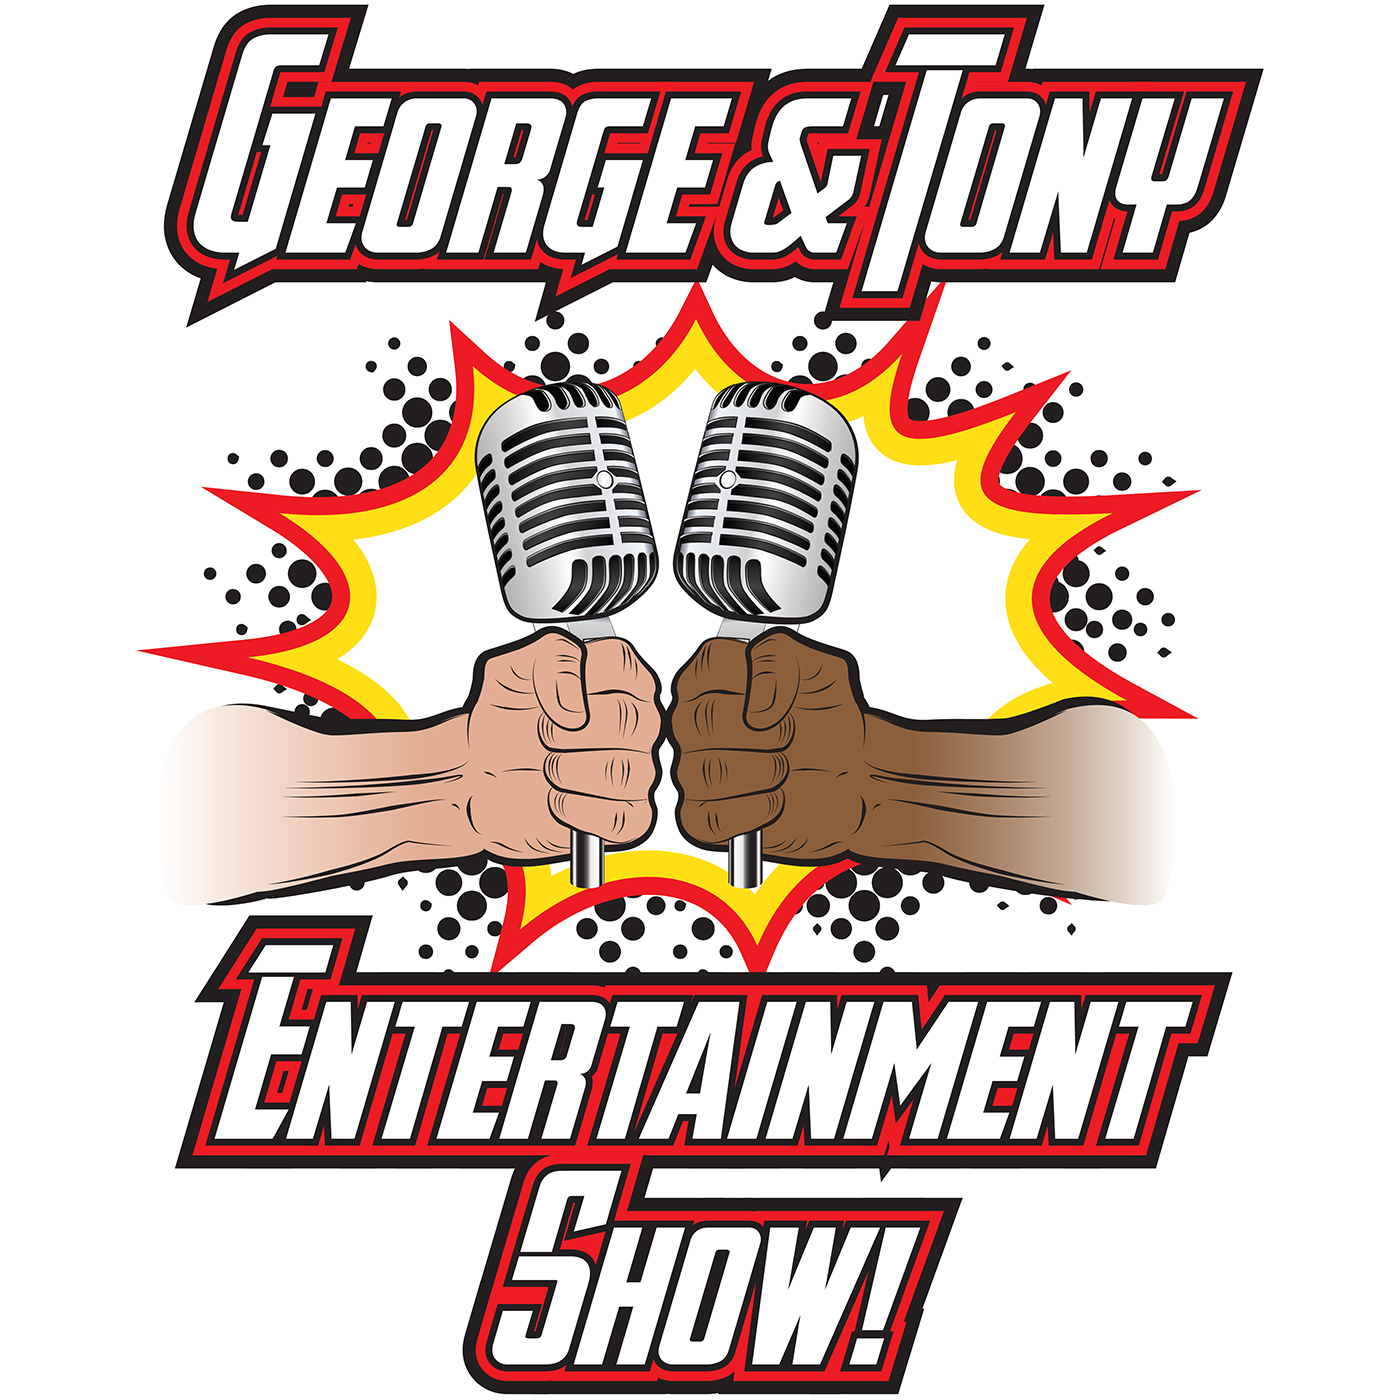 George and Tony Entertainment Show #35